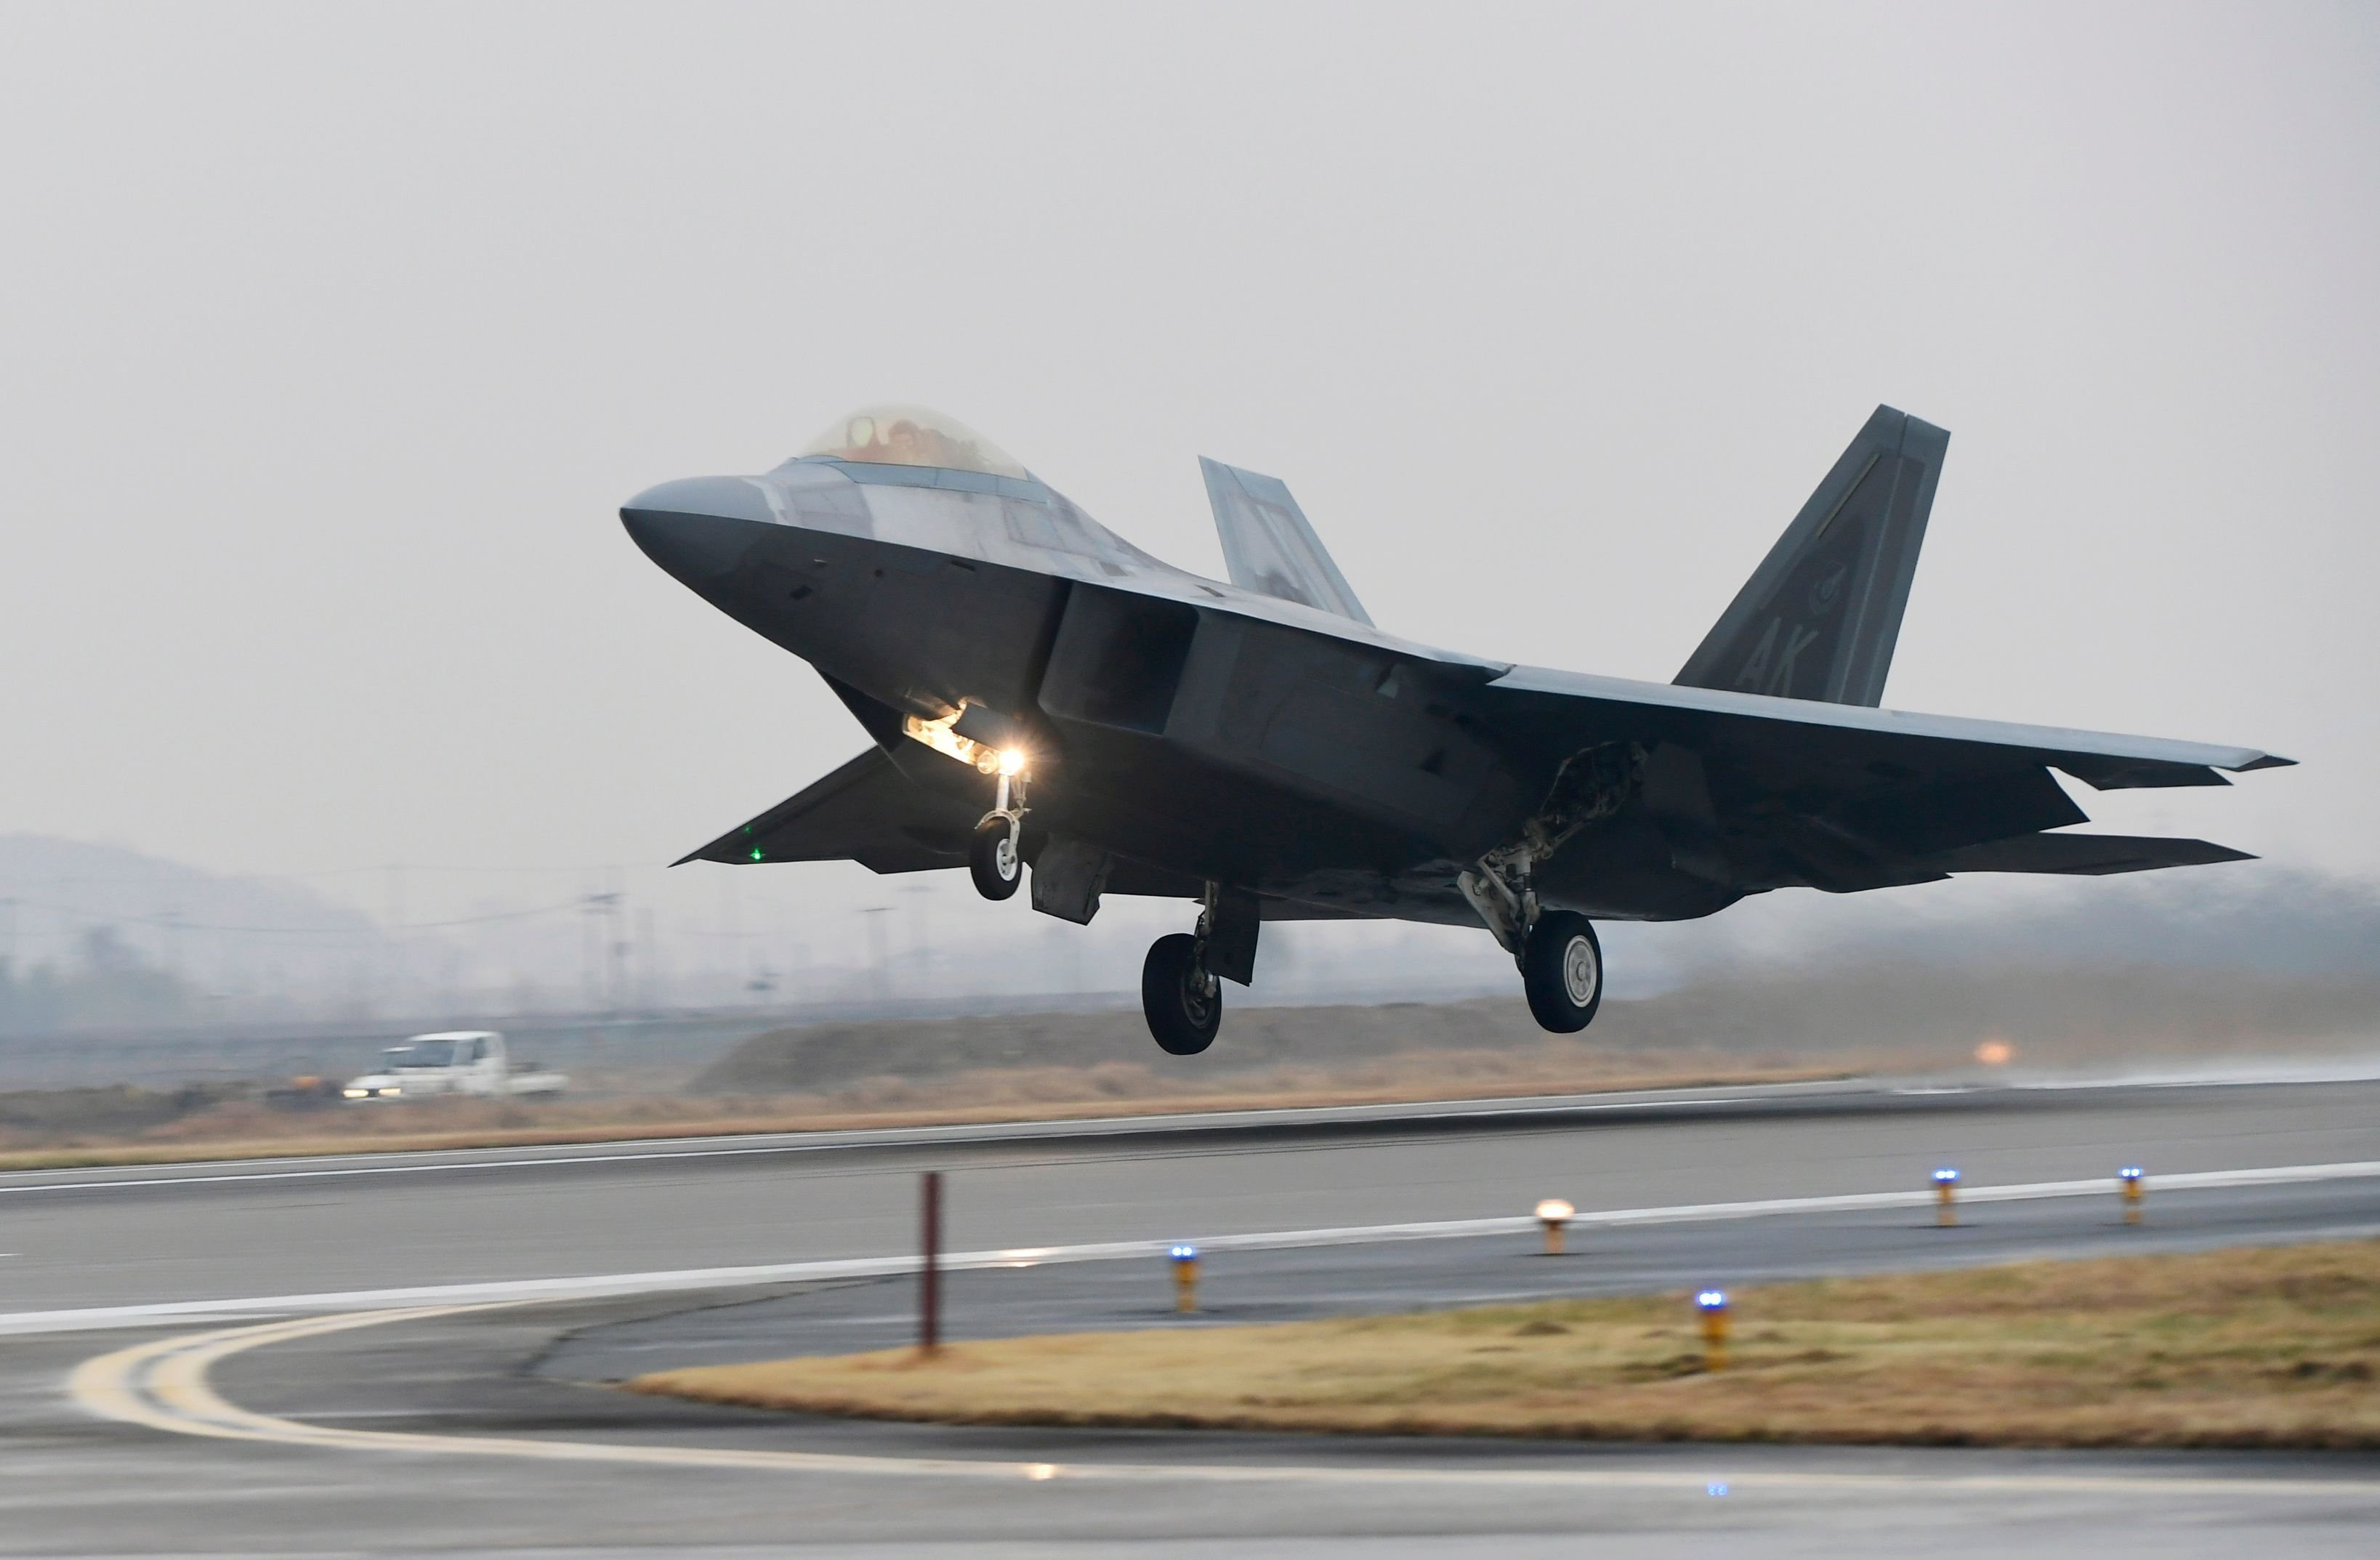 **This image is for use with this specific article only.**  A US Air Force F-22 Raptor stealth jet takes off at a South Korean air base in Gwangju on December 4, 2017.